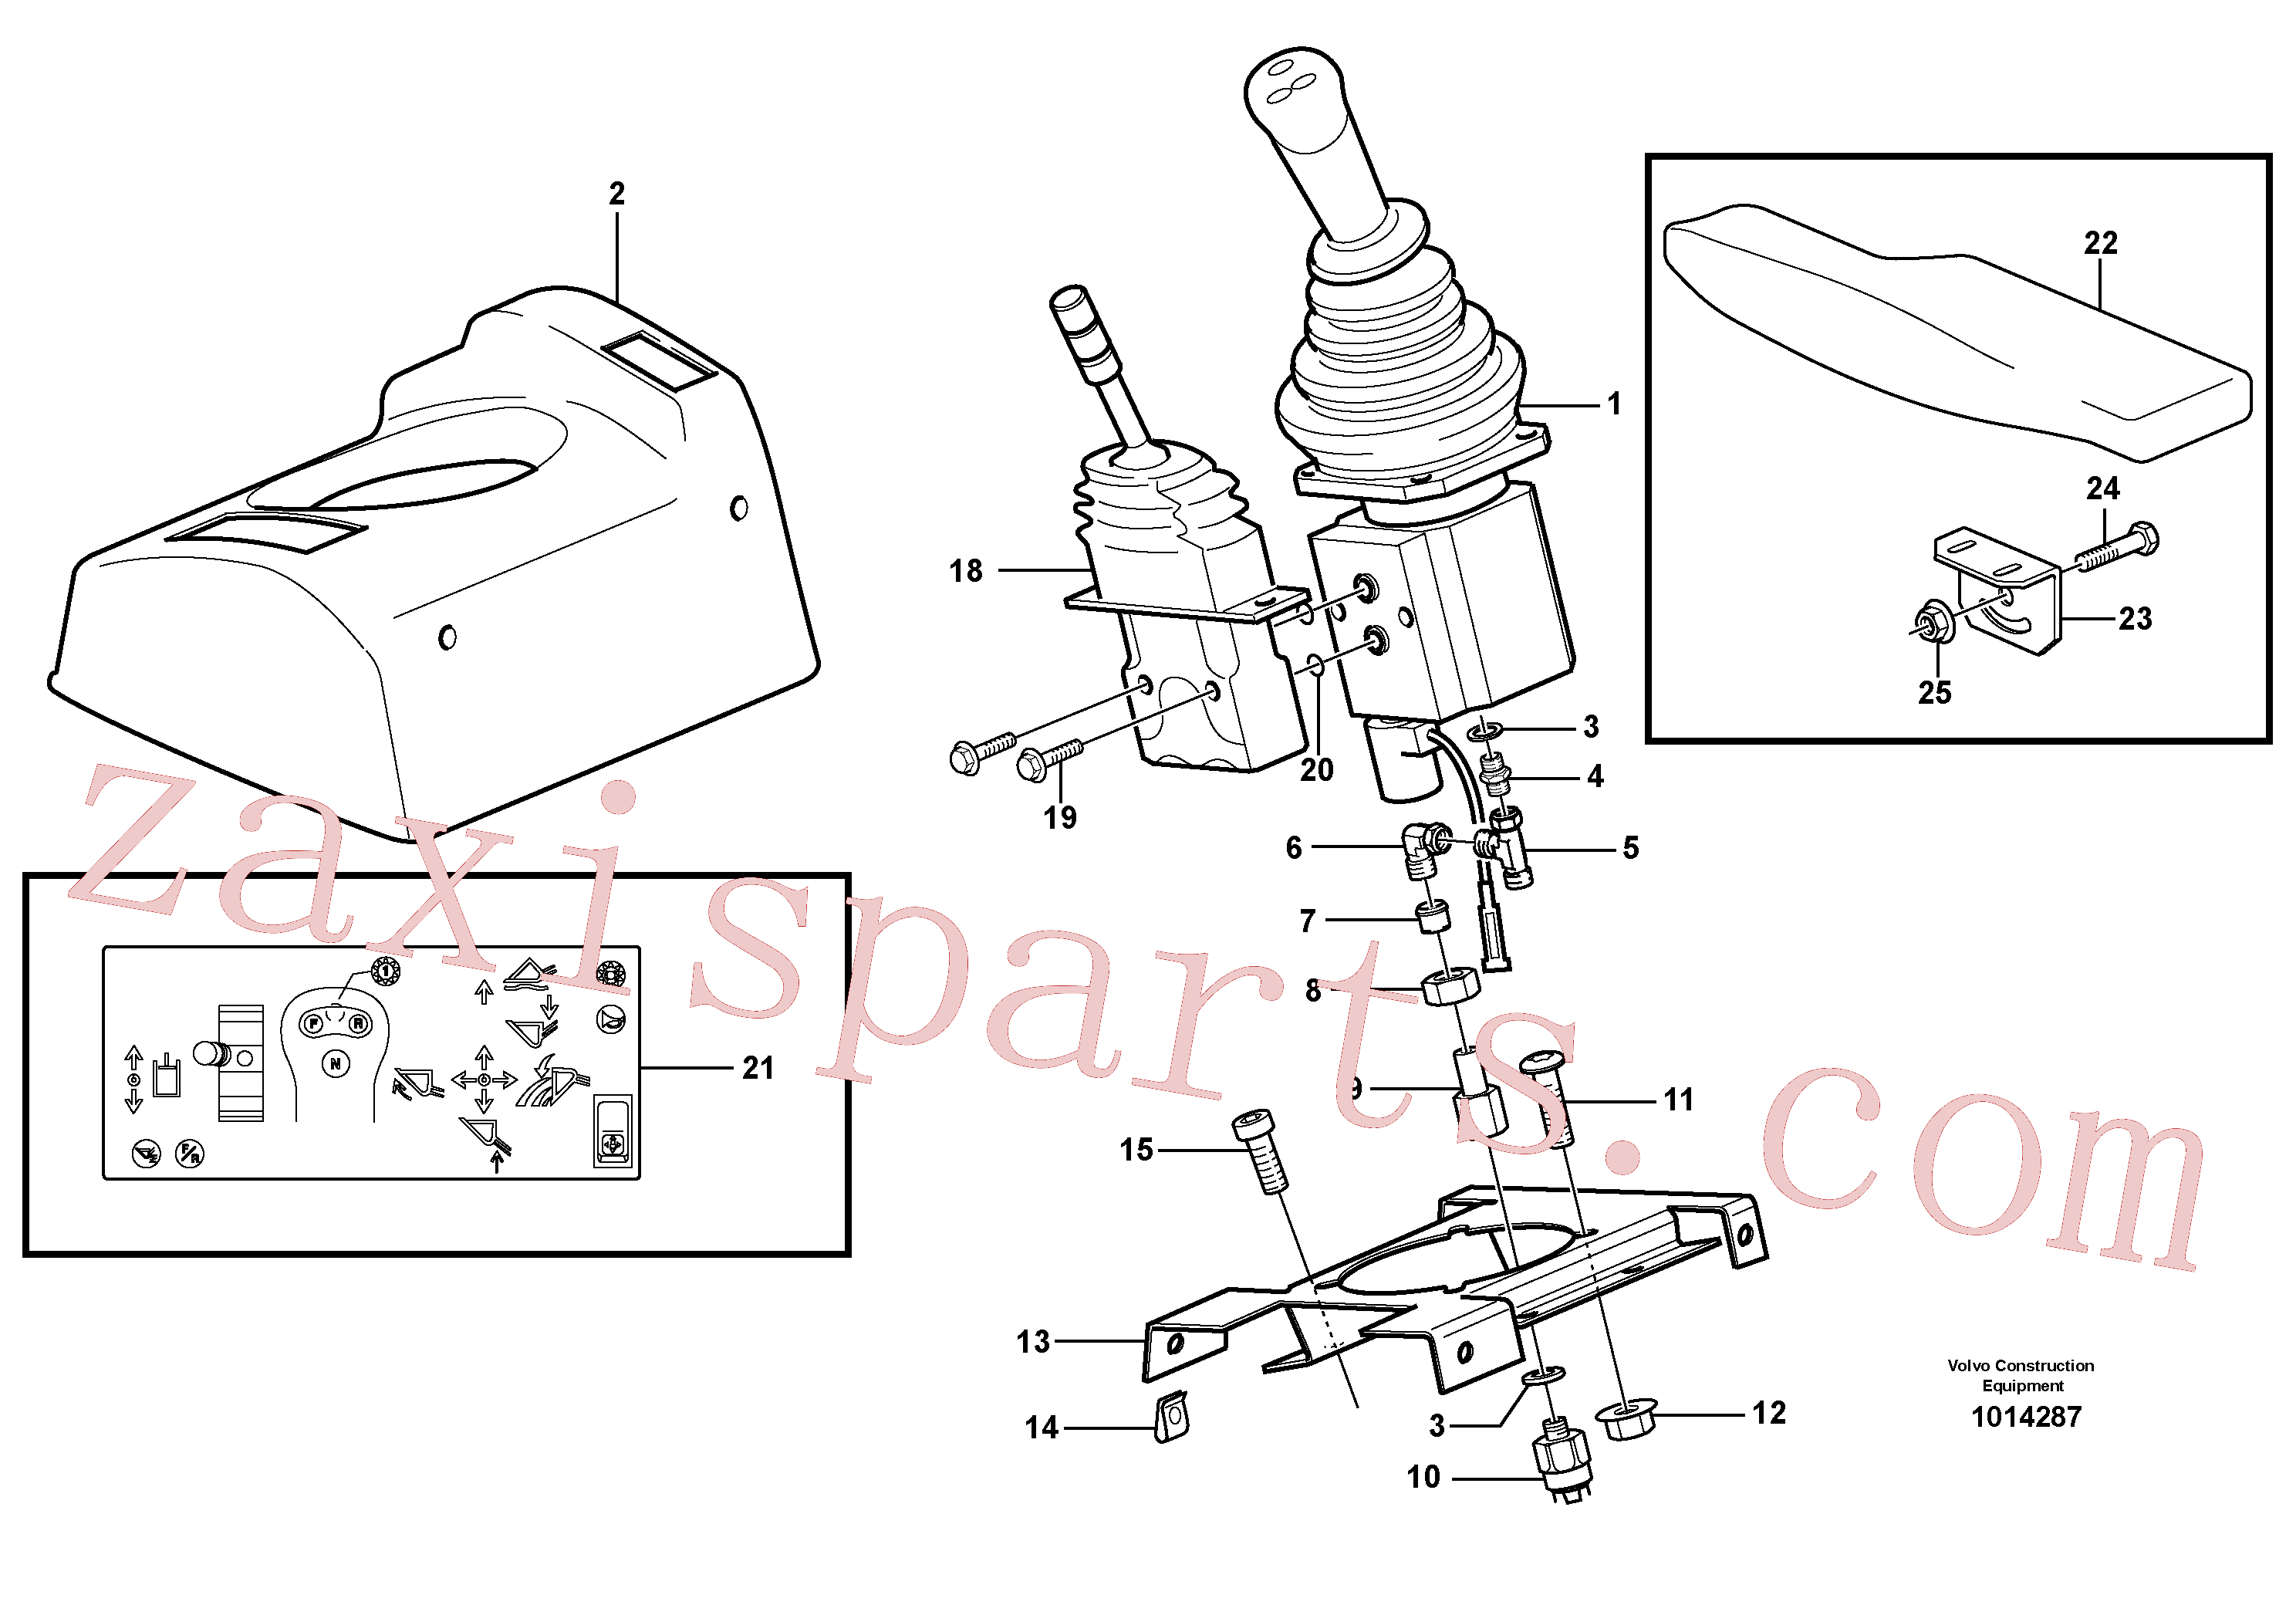 VOE944524 for Volvo Servo valve with fitting parts(1014287 assembly)